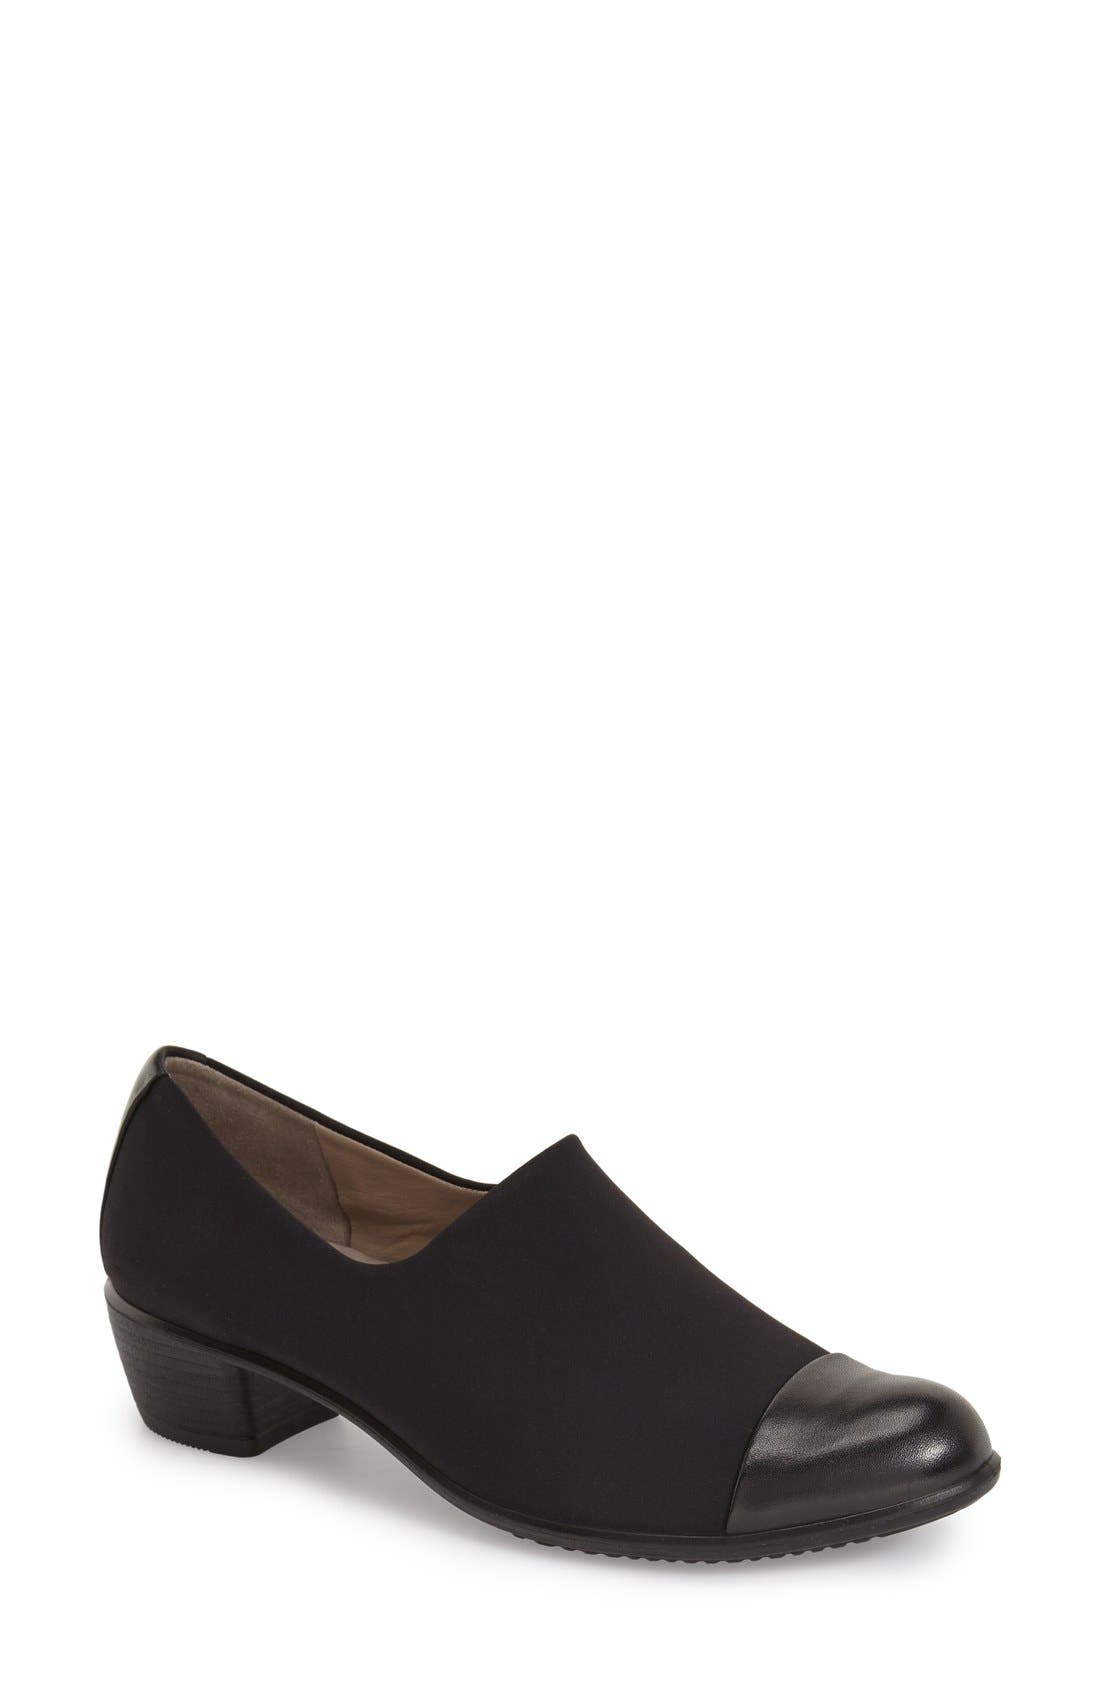 Alternate Image 1 Selected - ECCO 'Touch 35' Clog (Women)